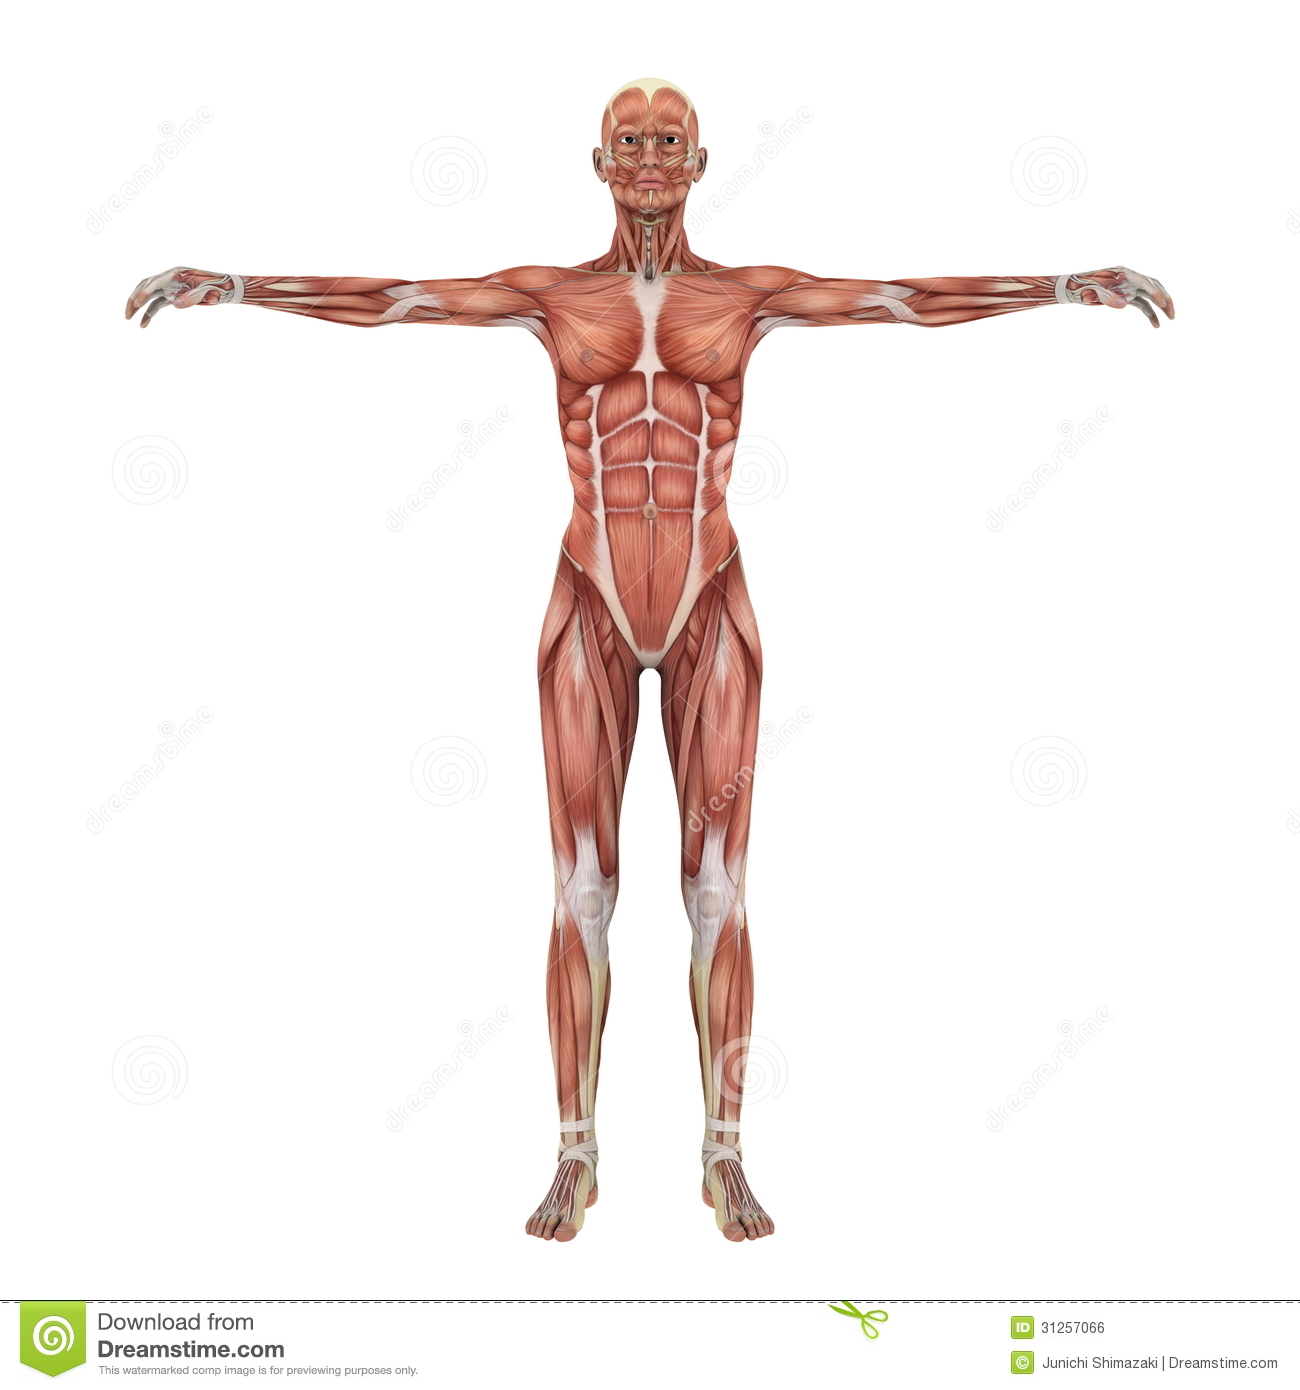 Human body stock illustration. Illustration of science - 31257066